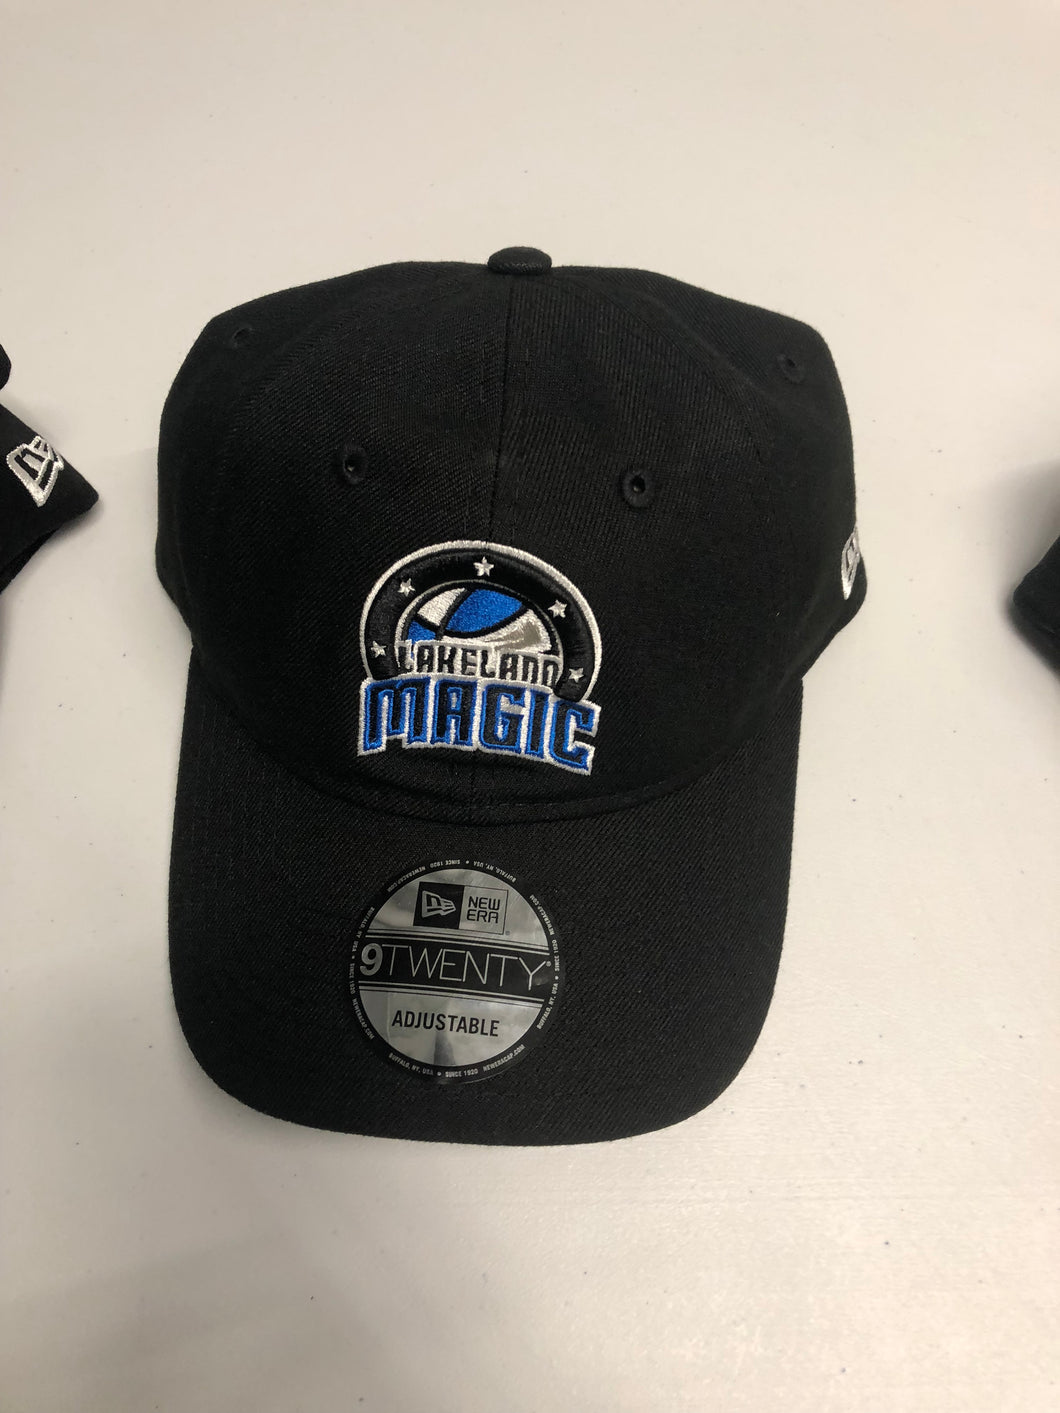 9Twenty Adjustable Hat with Lakeland Magic Logo & Lakeland Magic - Black